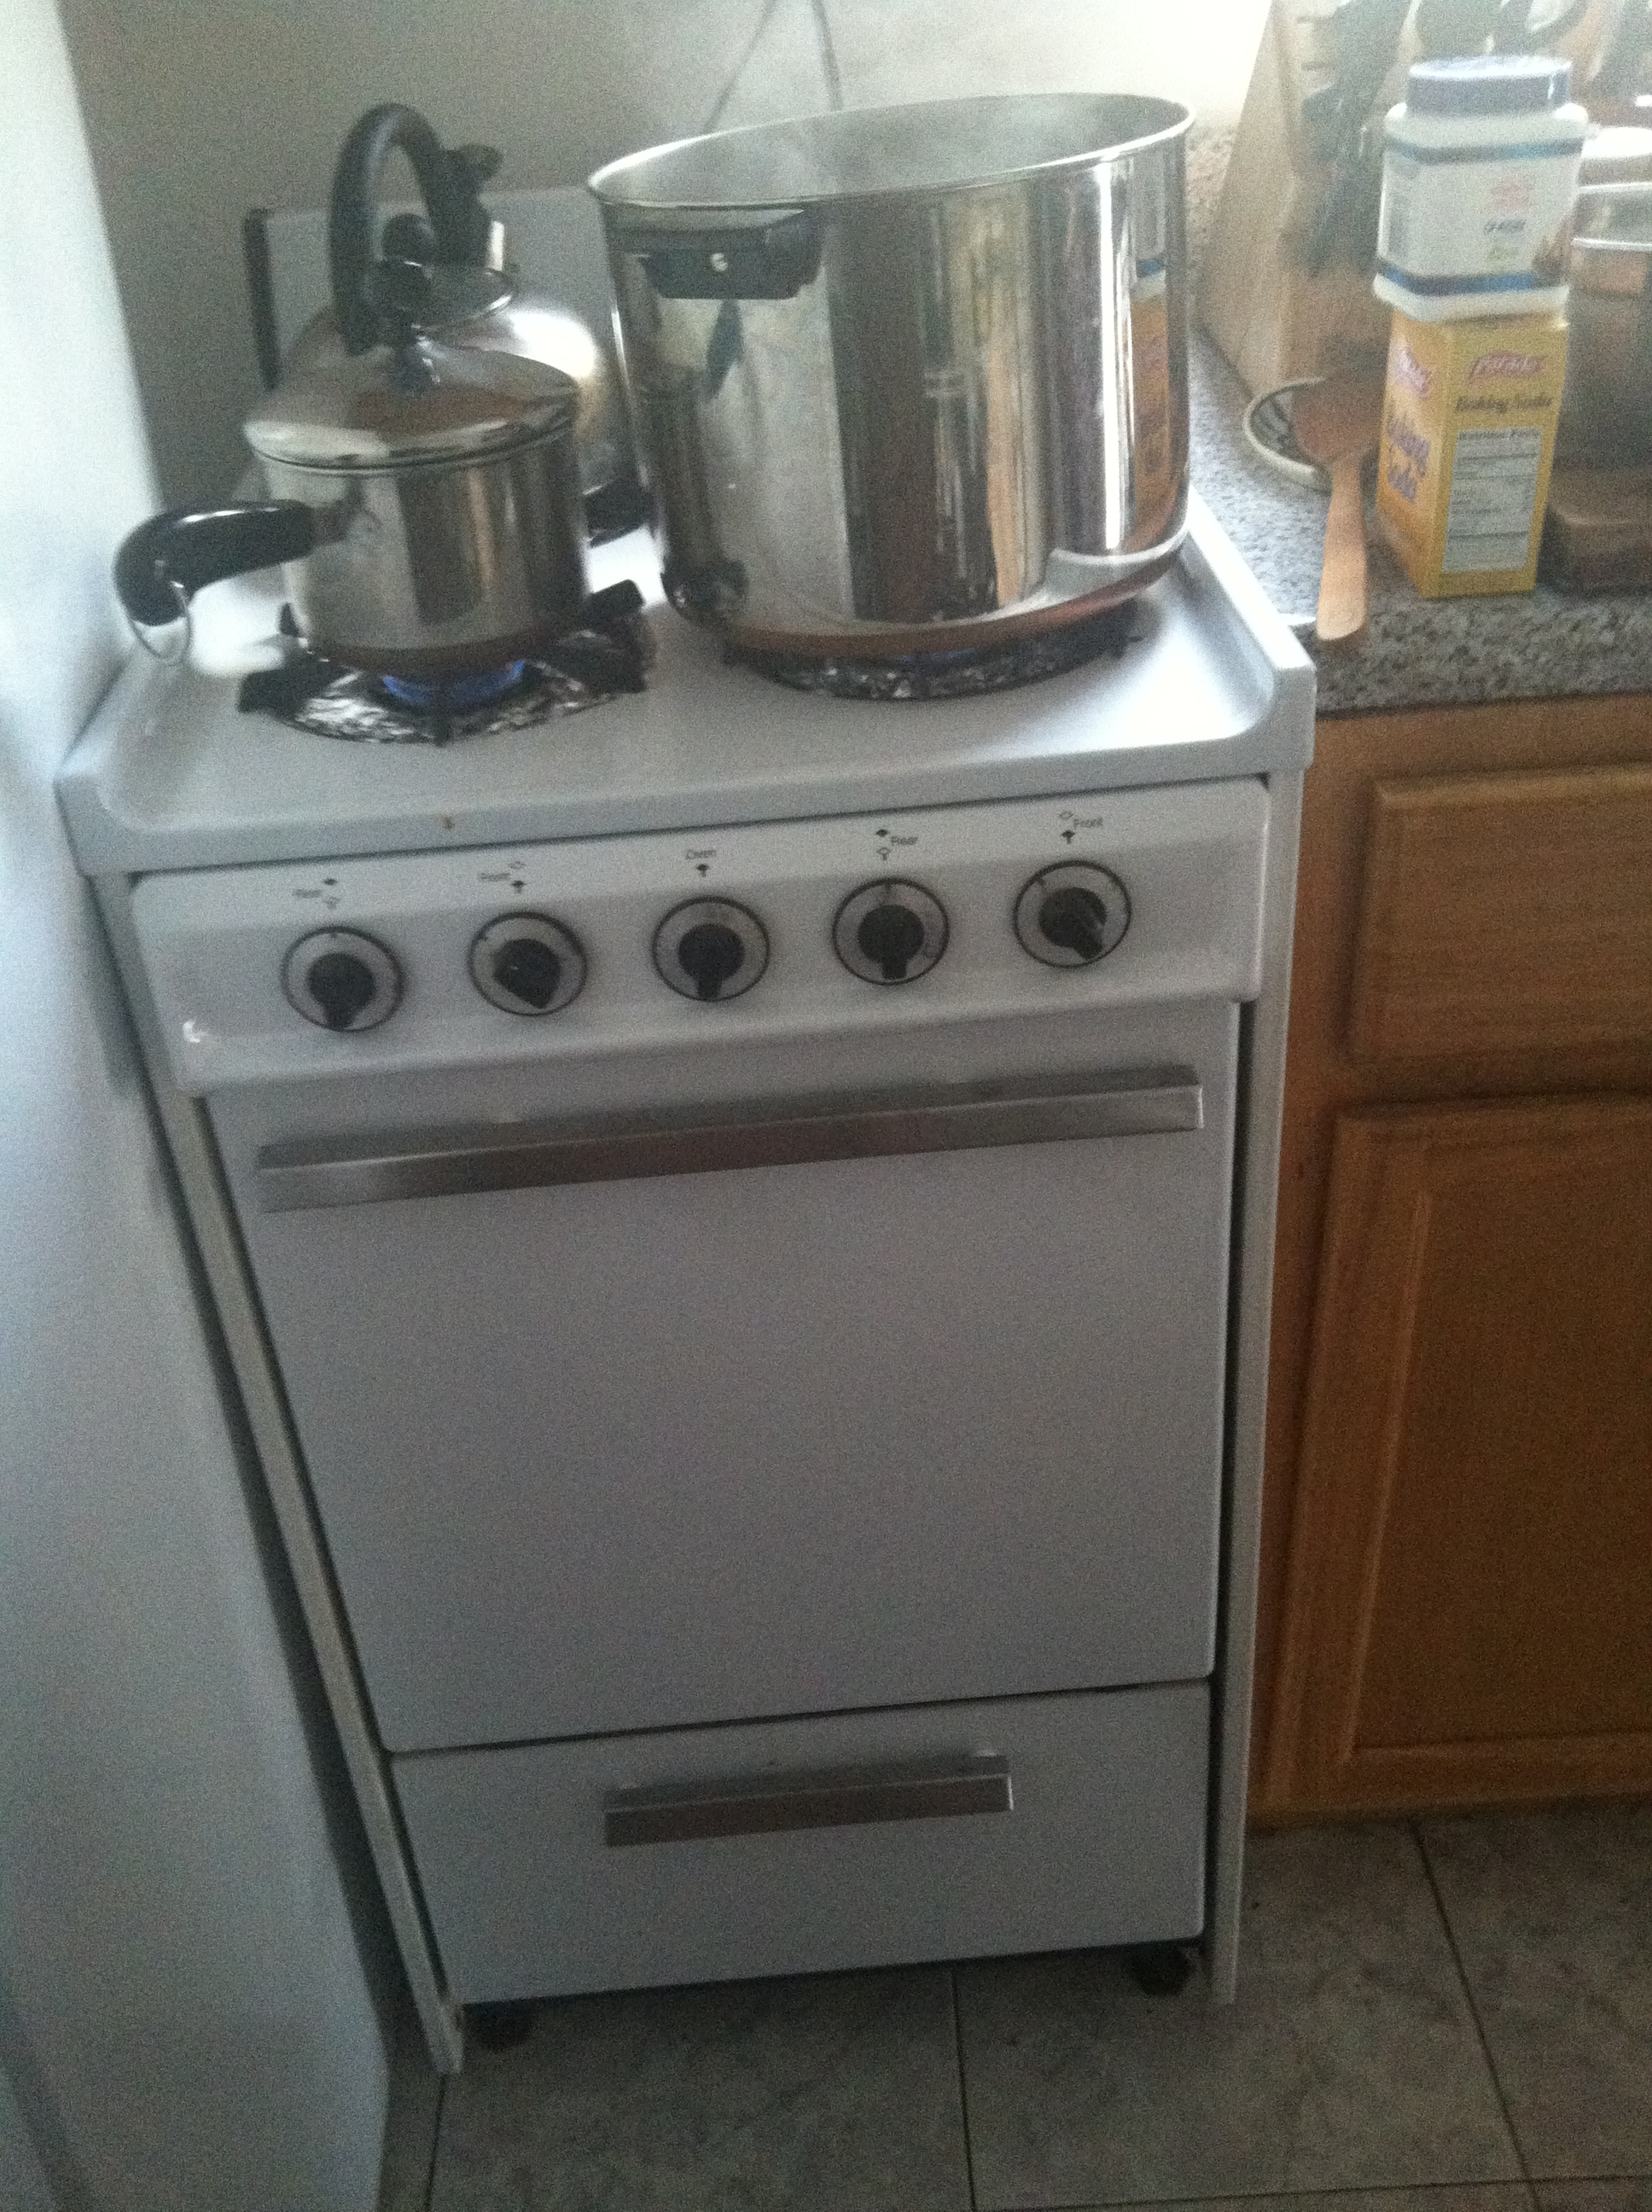 Apartment Size Oven